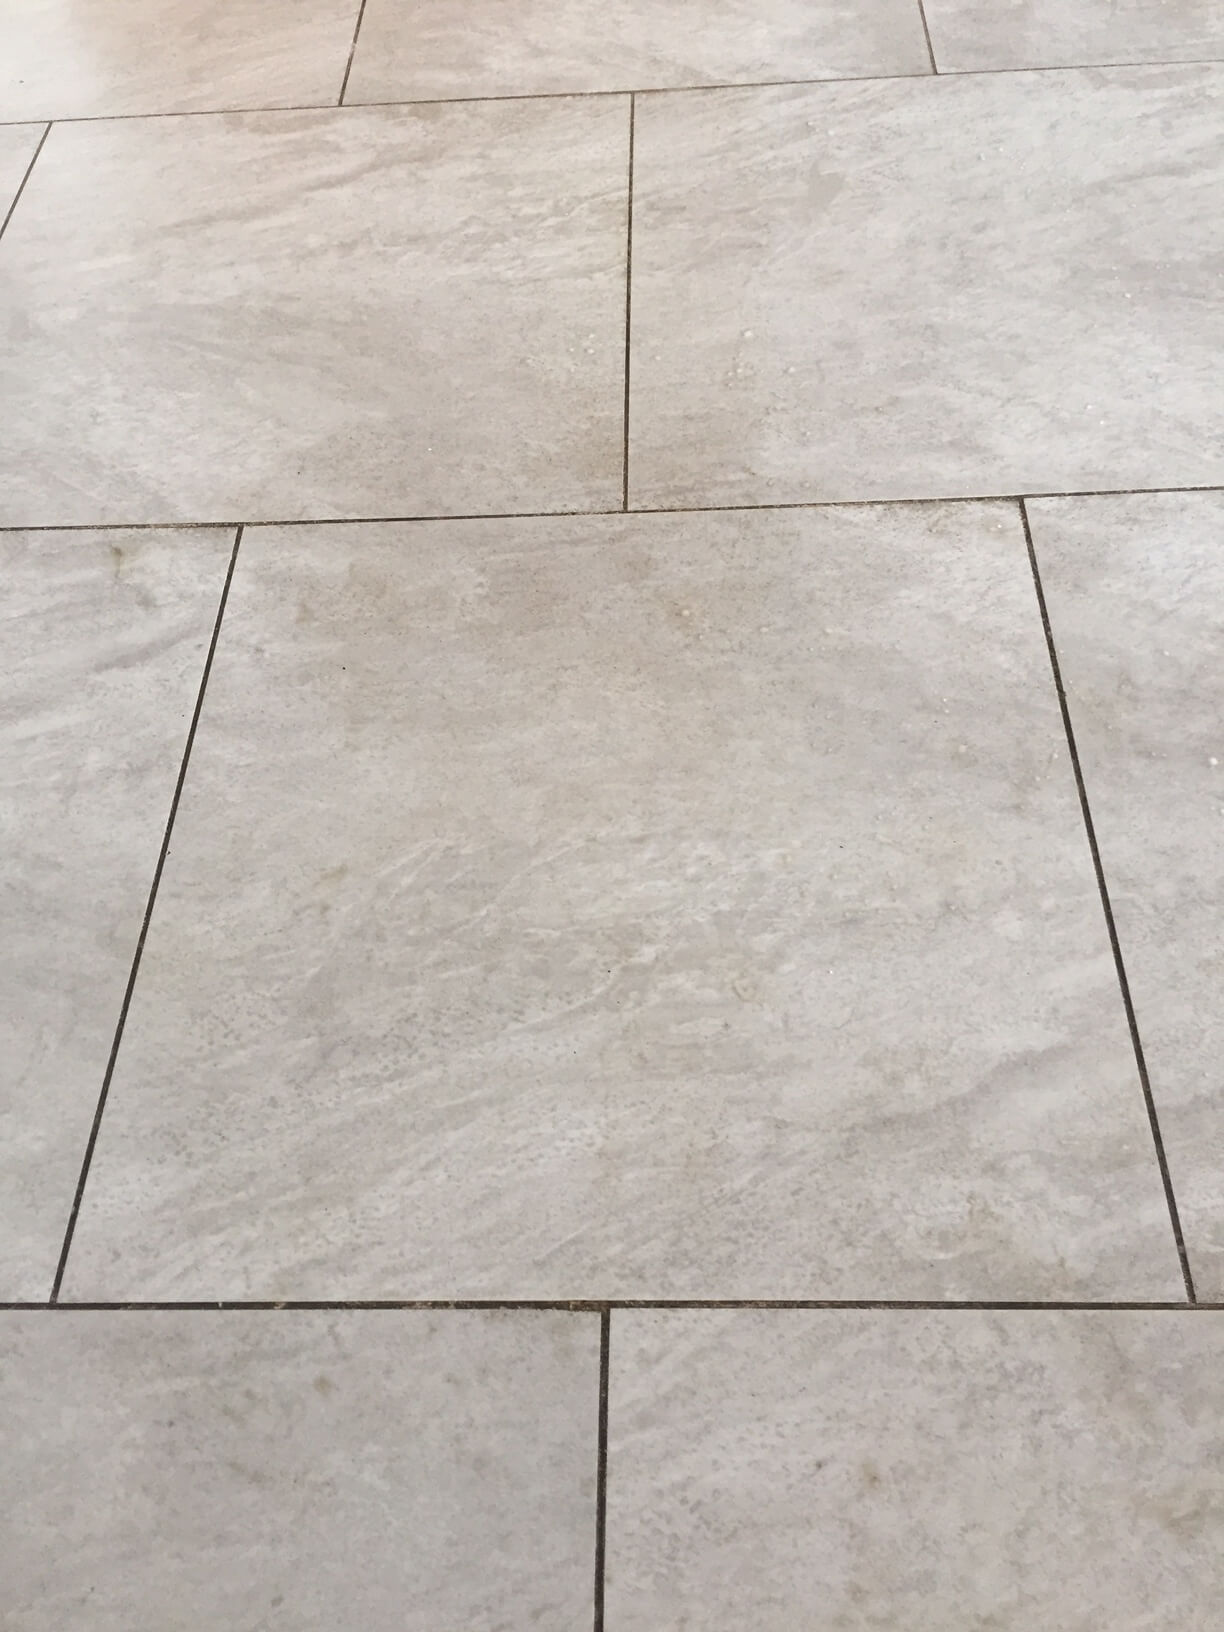 Tile & Grout Cleaning Donaghadee